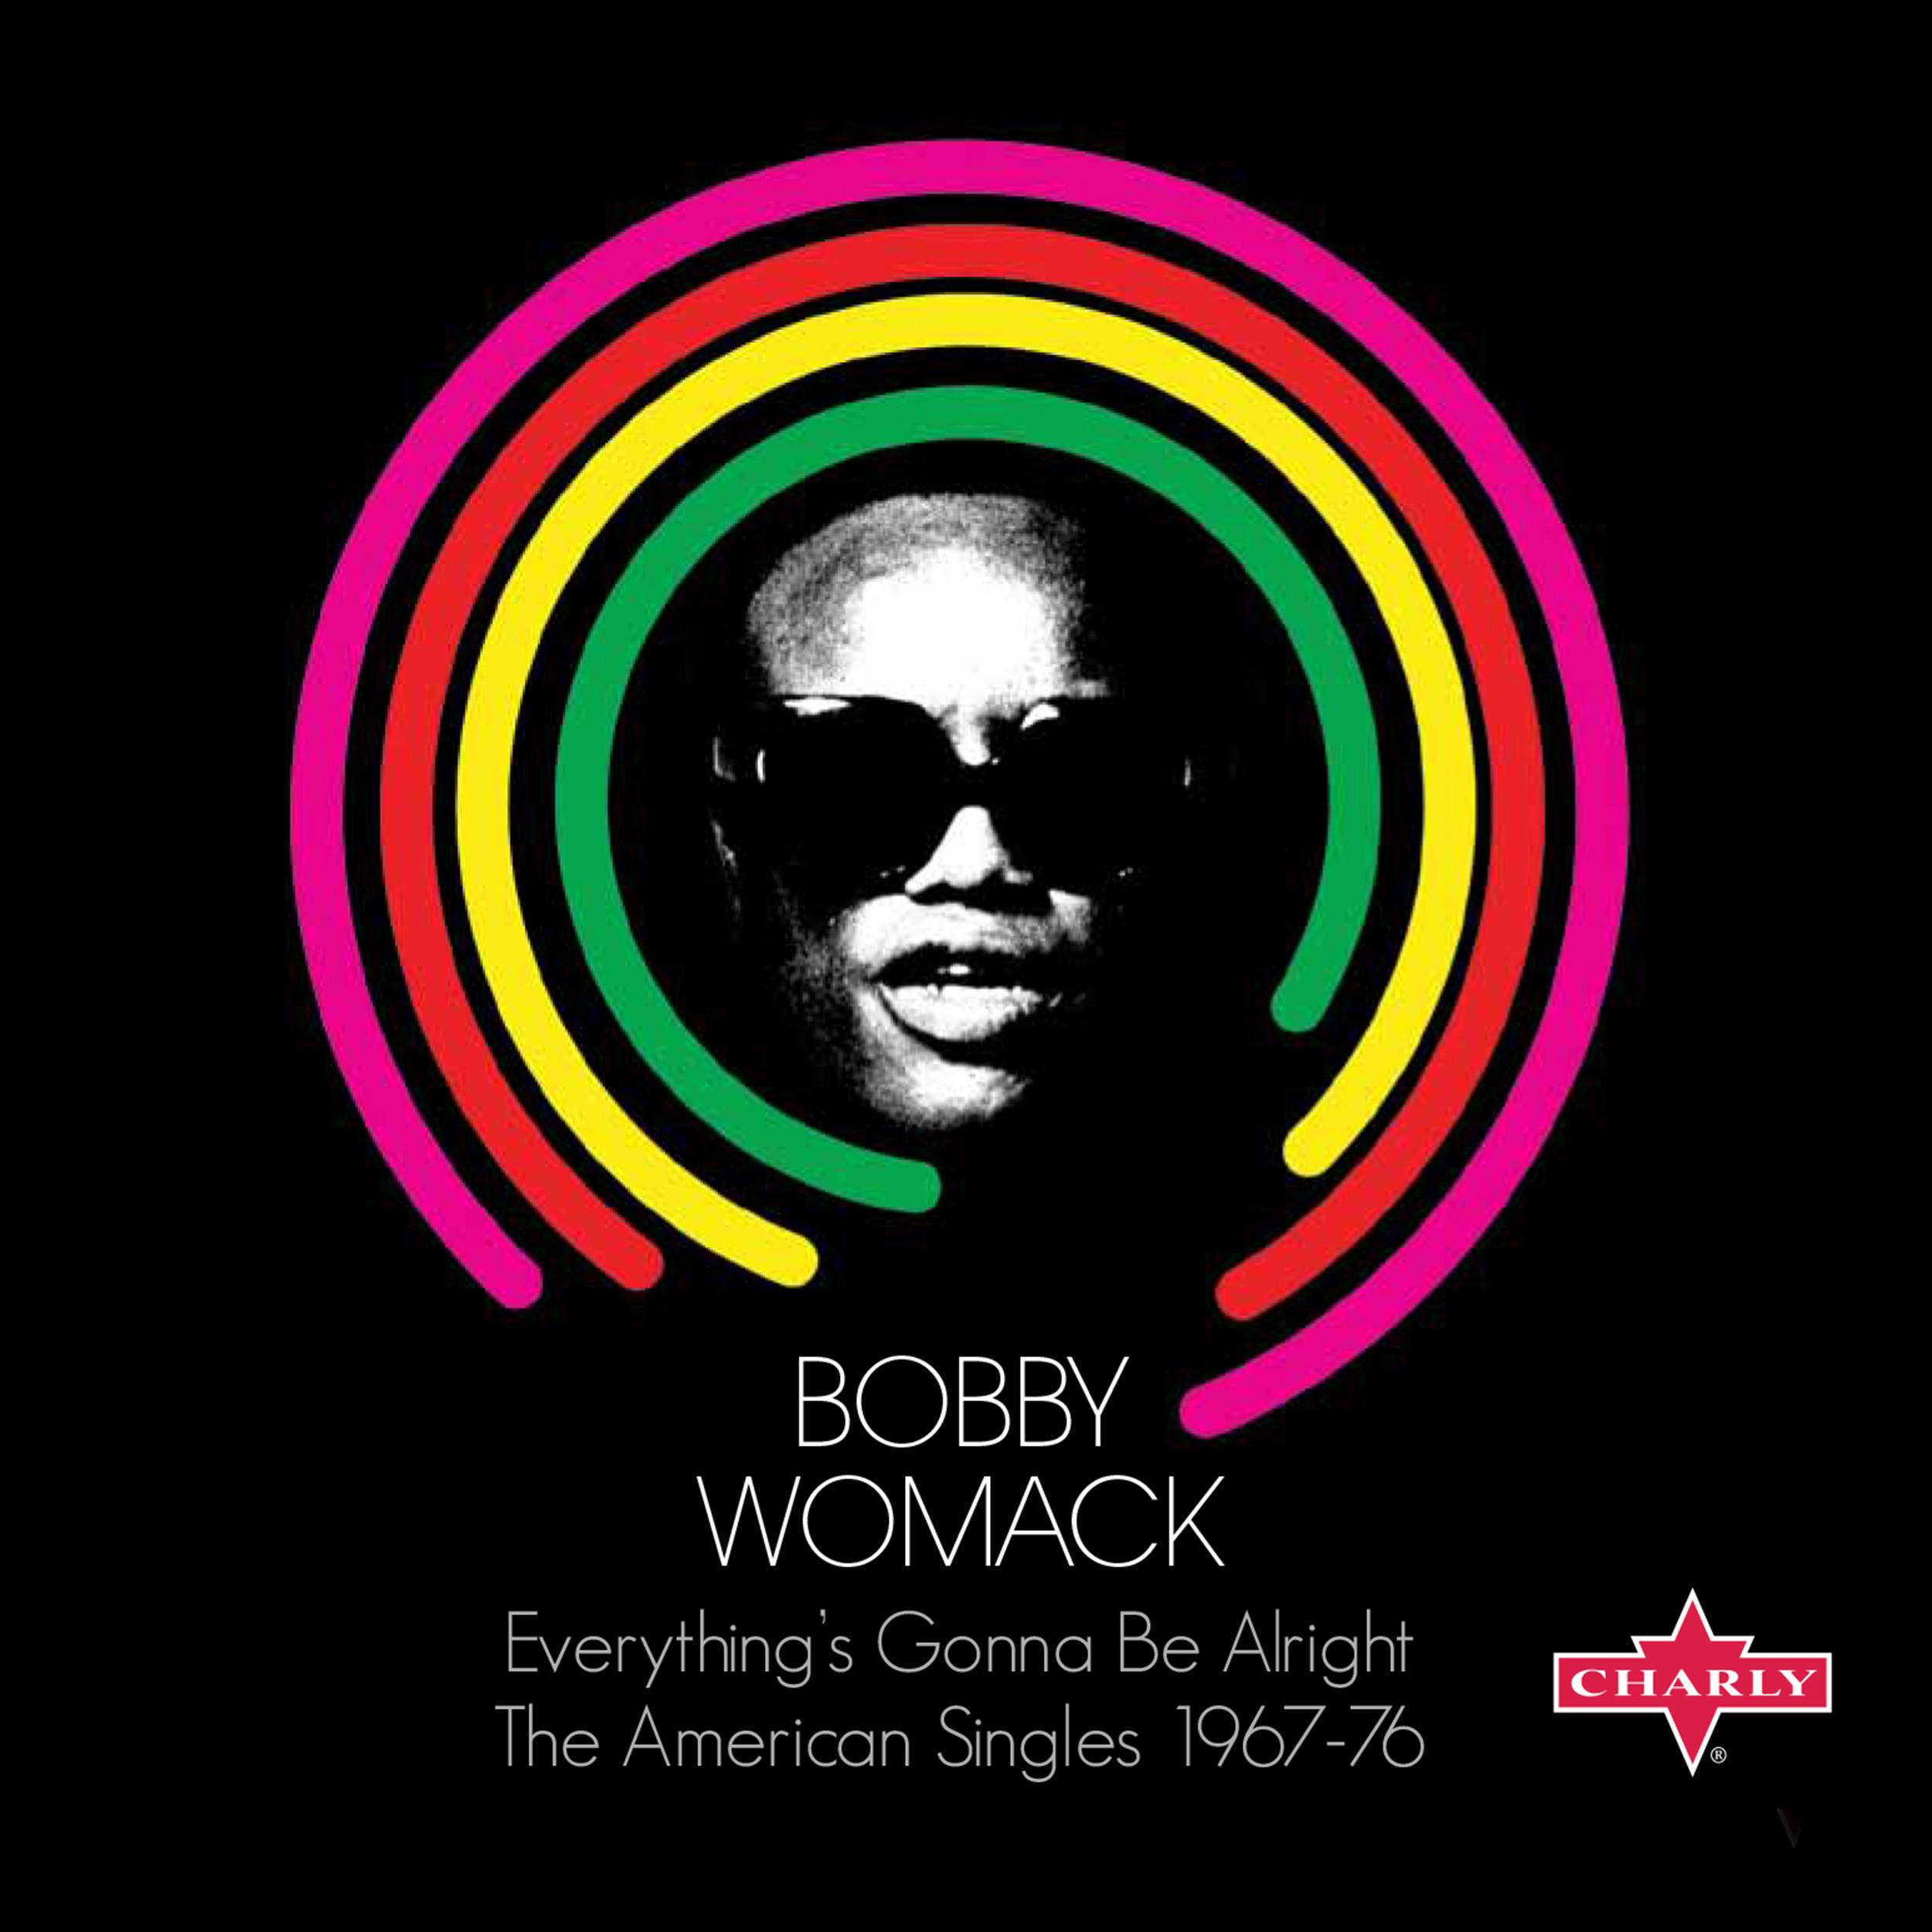 Bobby Womack - Everythings Gonna Be Alright The American Singles 1967-76 (2013) [MULTI]